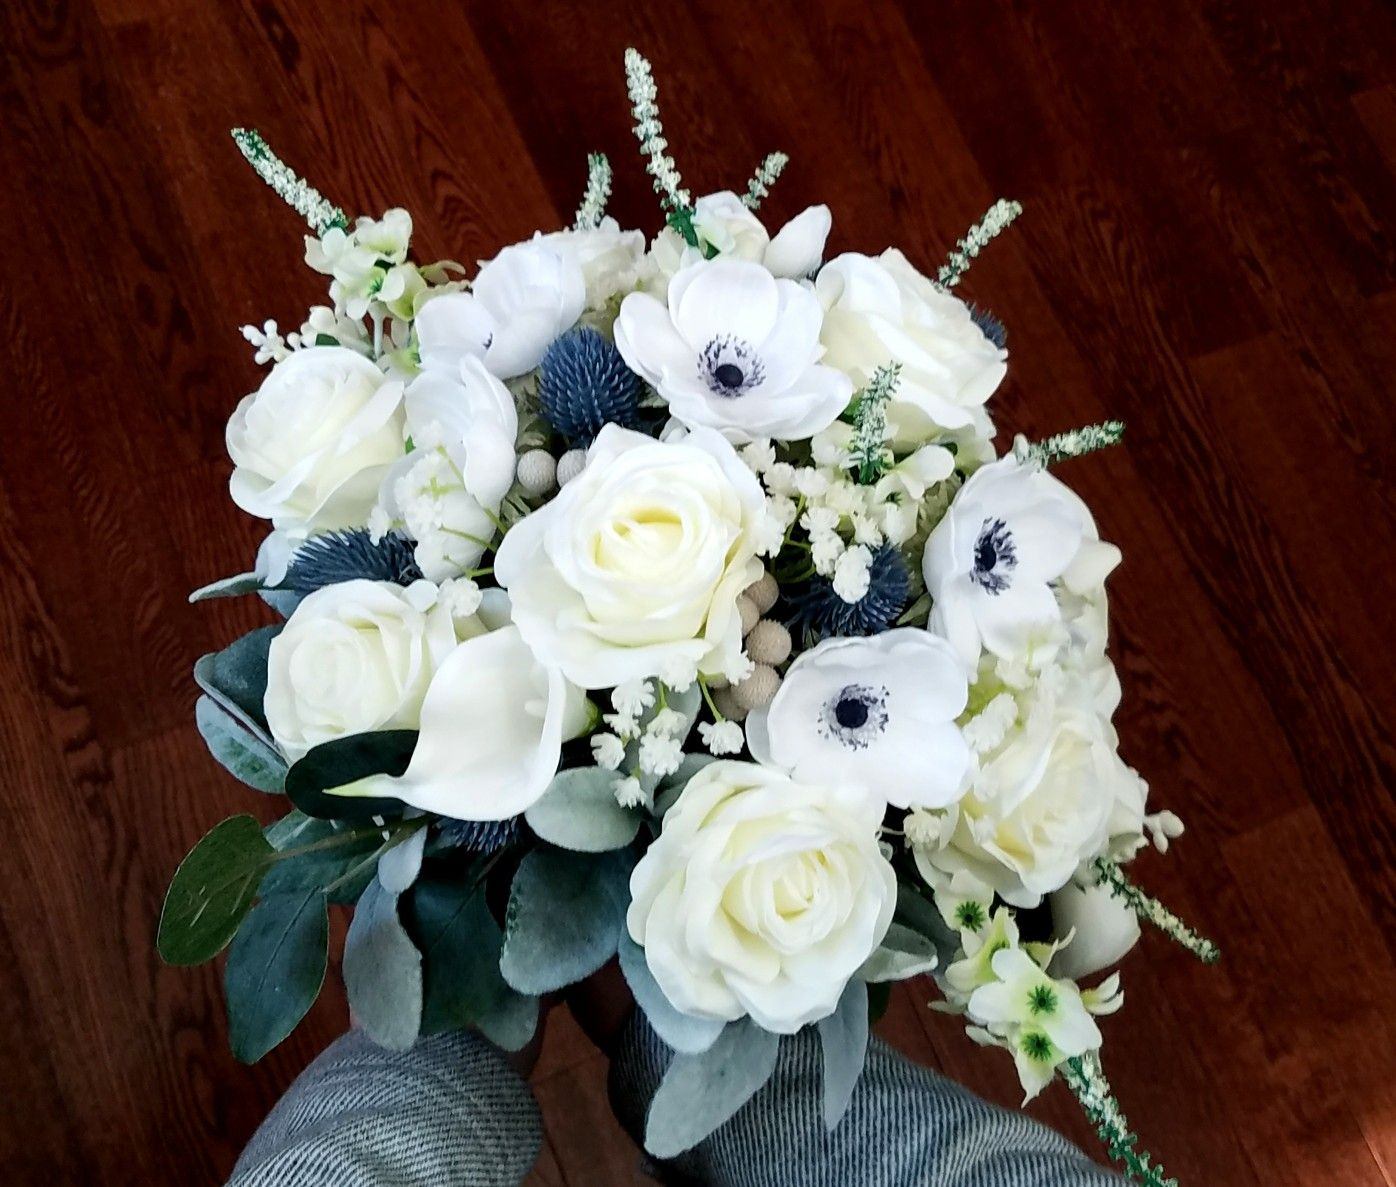 Gorgeous cascading bridal bouquet contact chicago silk florist to gorgeous cascading bridal bouquet contact chicago silk florist to create a beautiful bridal bouquet mightylinksfo